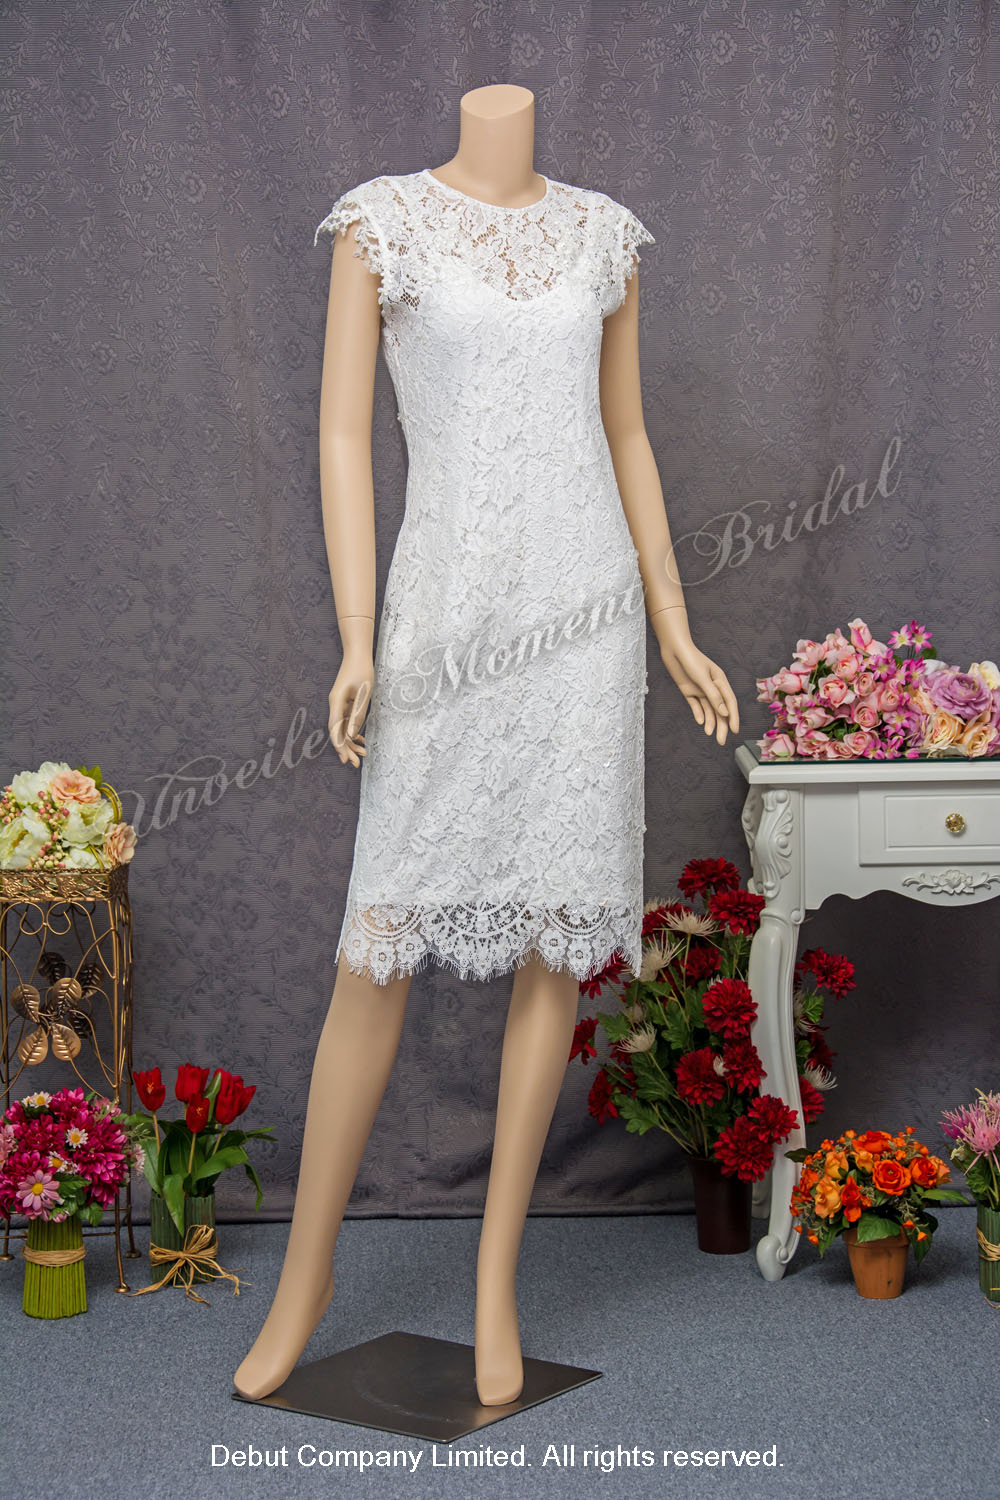 Lace applique embellishments, round neckline, calf-length, carefree wedding dress. 蕾絲釘珠, 圓領短裙輕婚紗